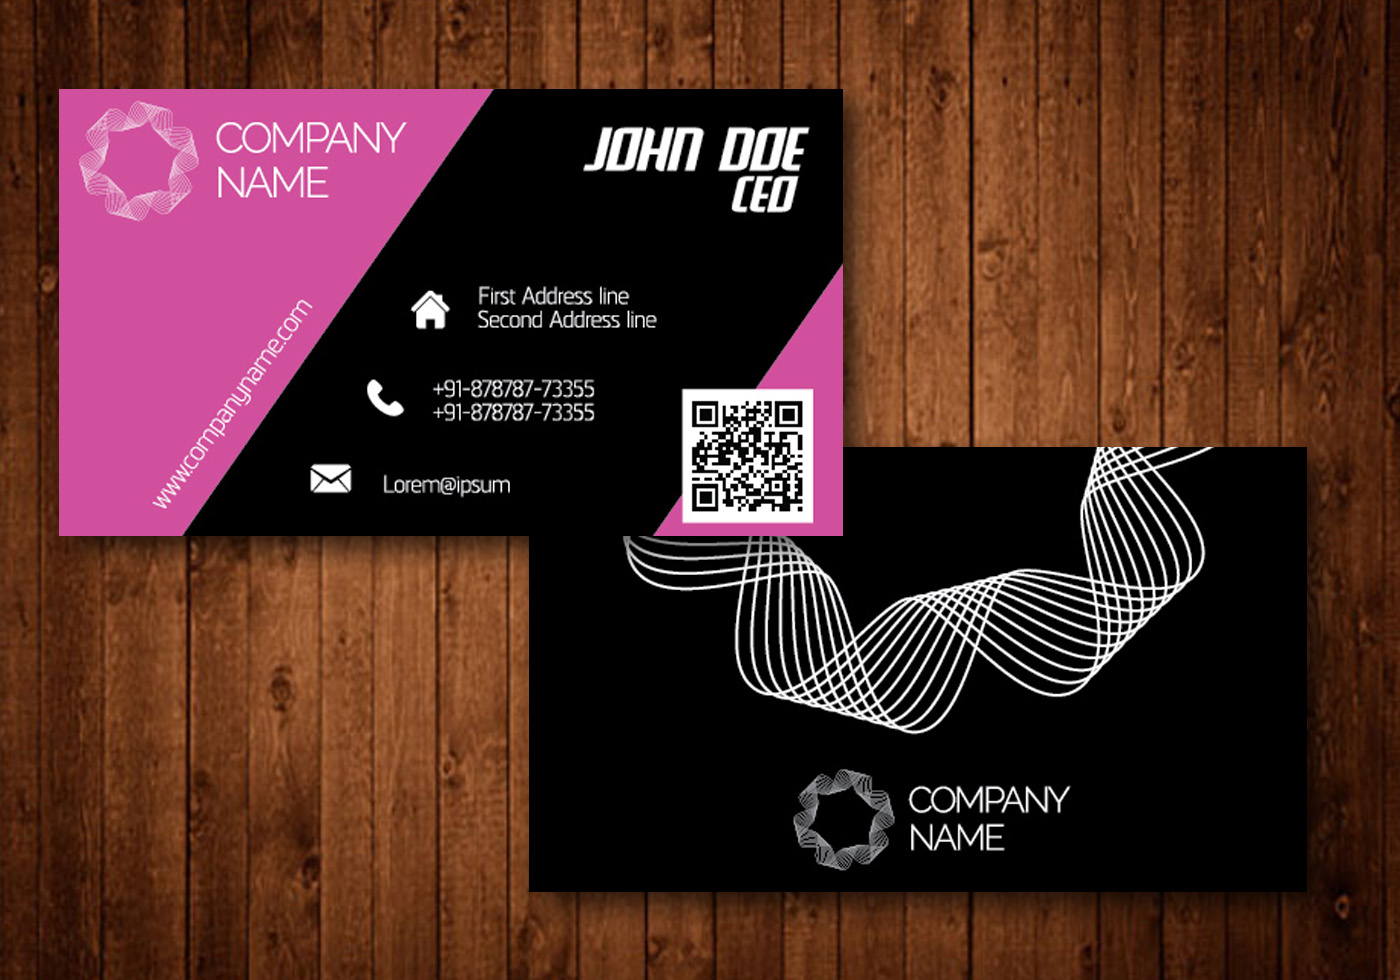 vector-pink-creative-business-card-2.jpg